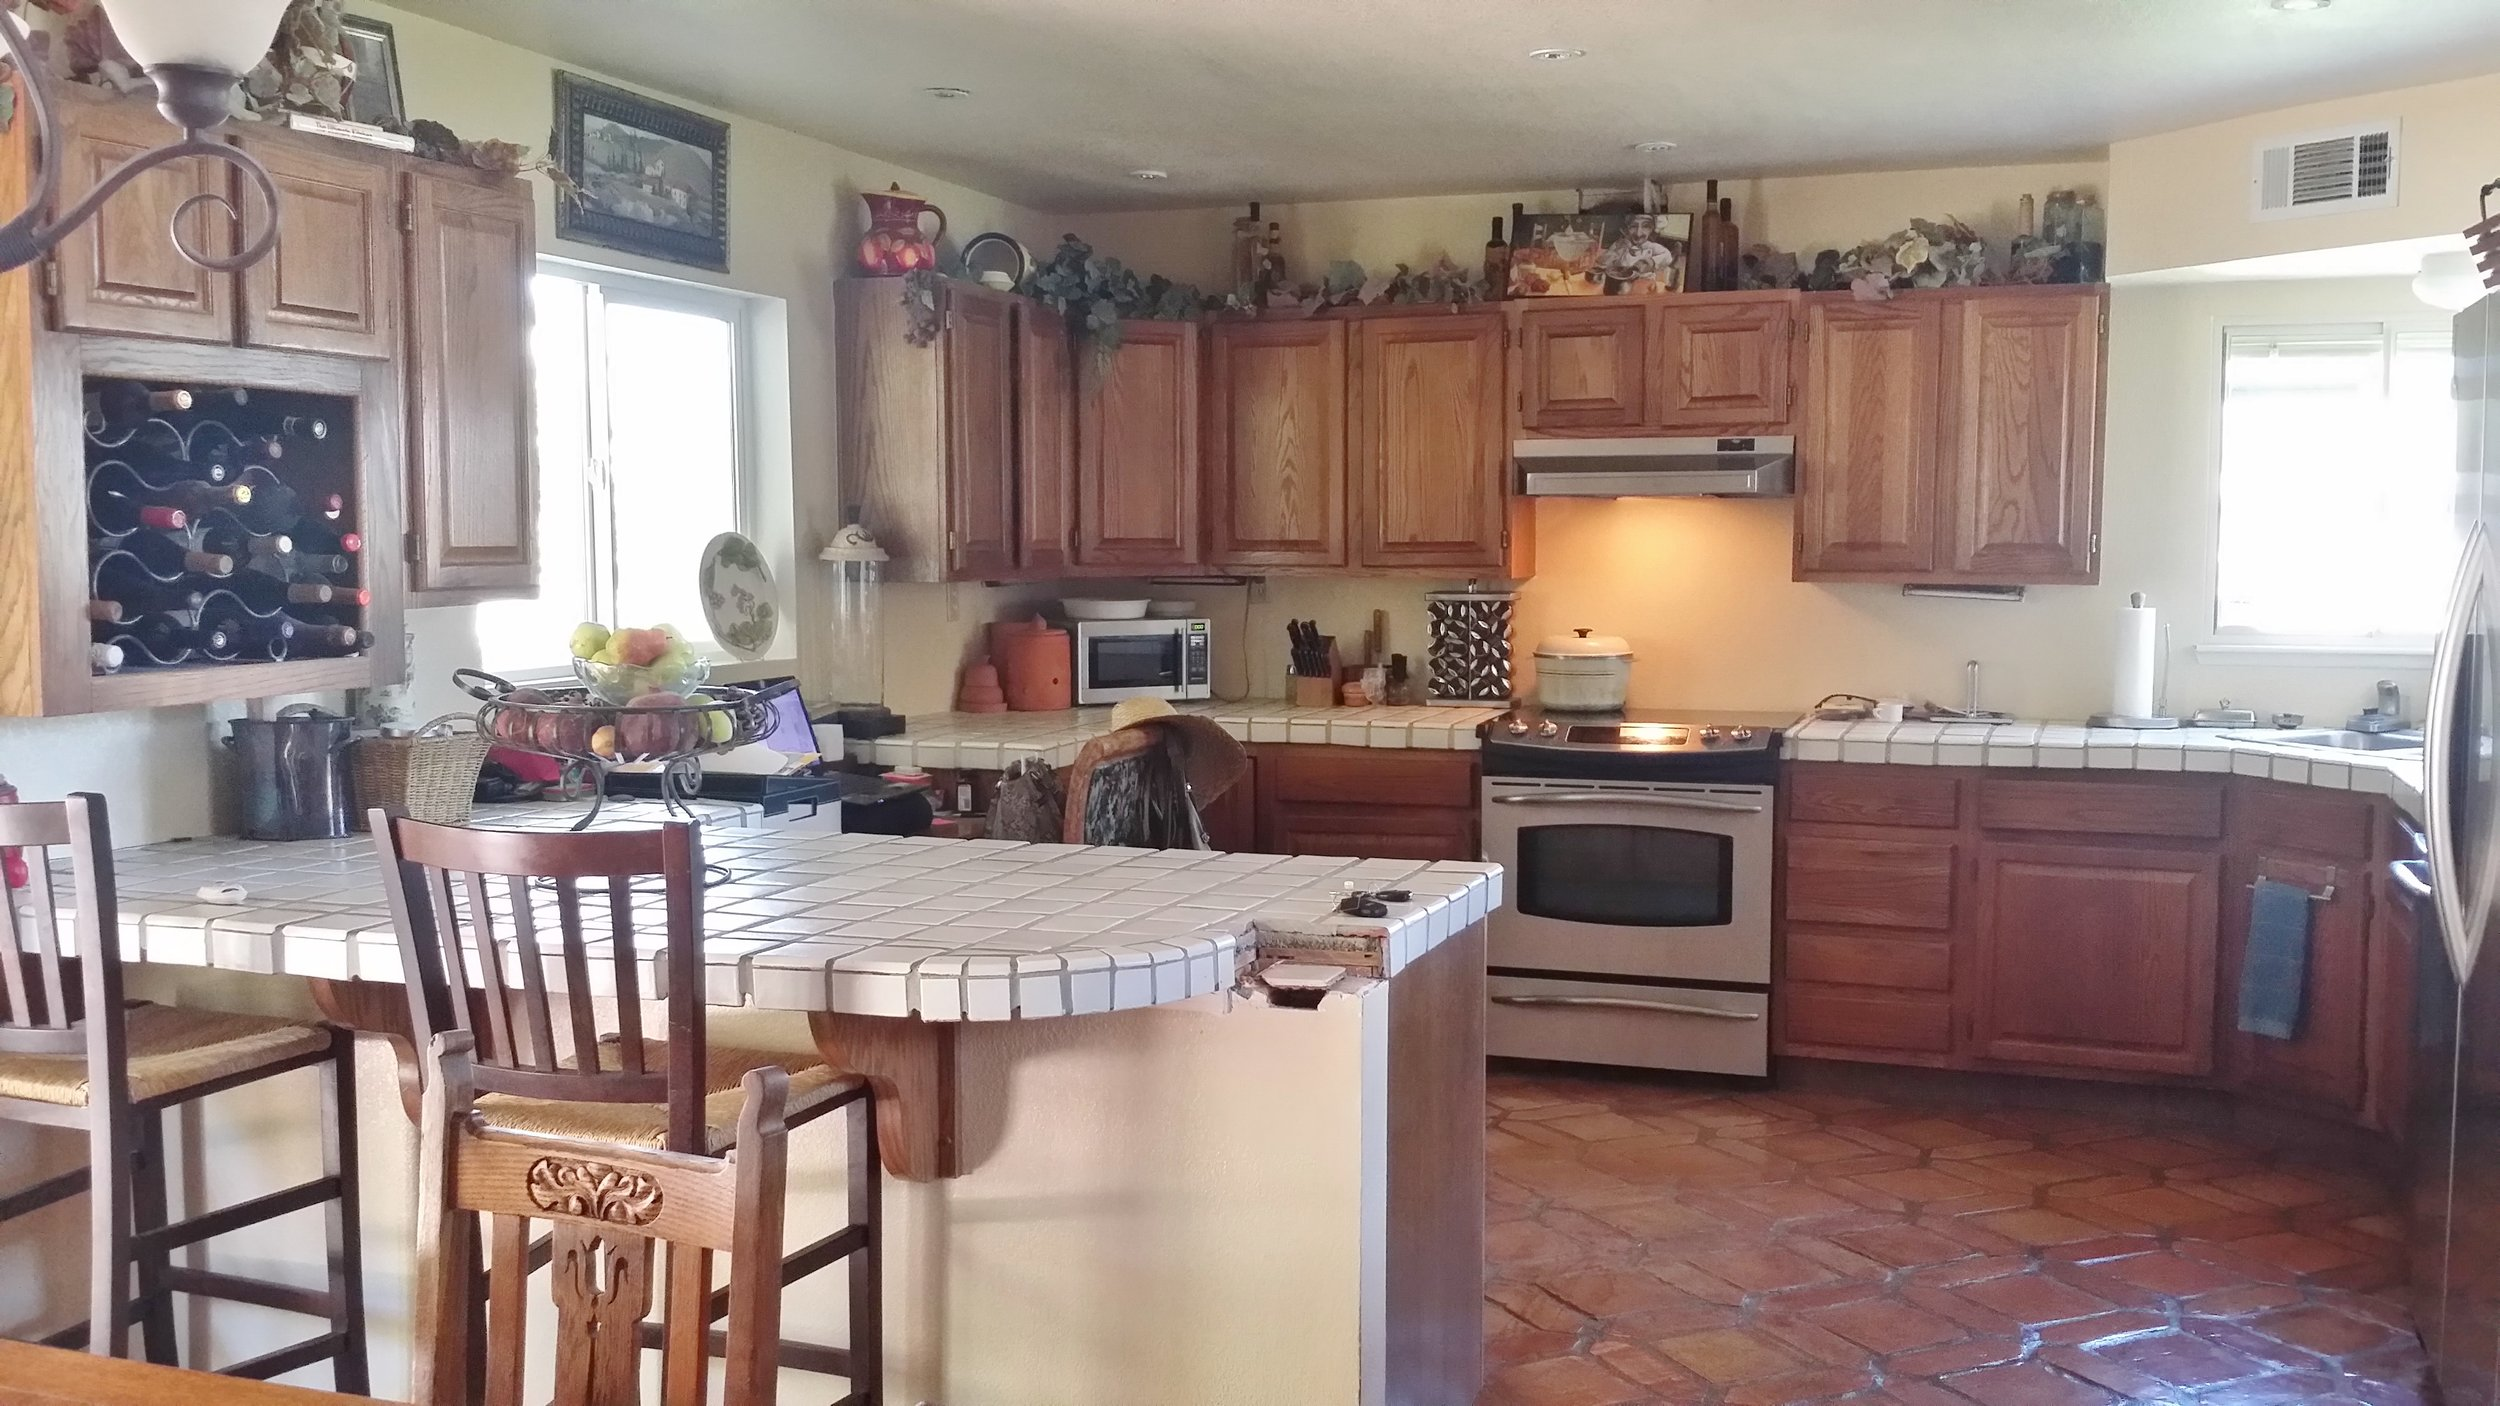 Before the remodel - Kitchen with terracotta floors